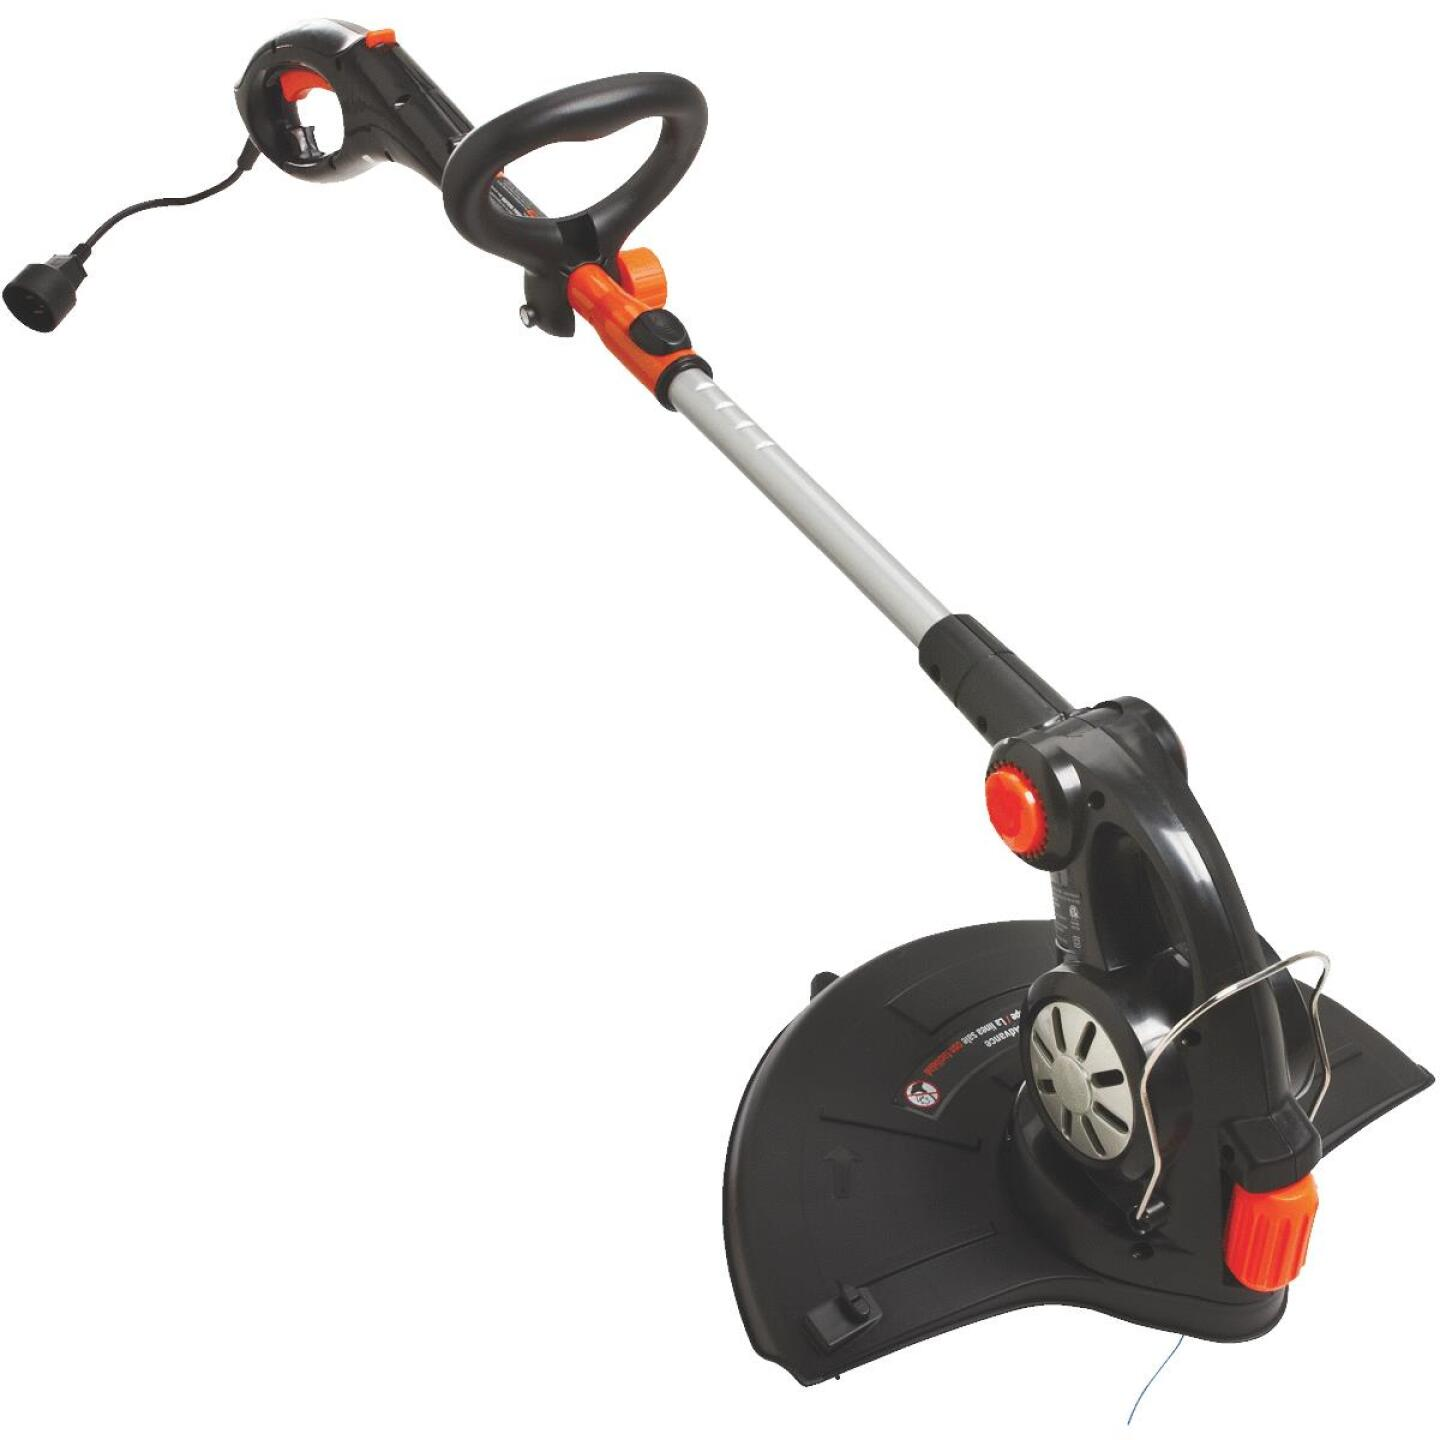 Remington RM115ST 14 In. 5.5-Amp Straight Shaft Corded Electric String Trimmer/Edger Image 3